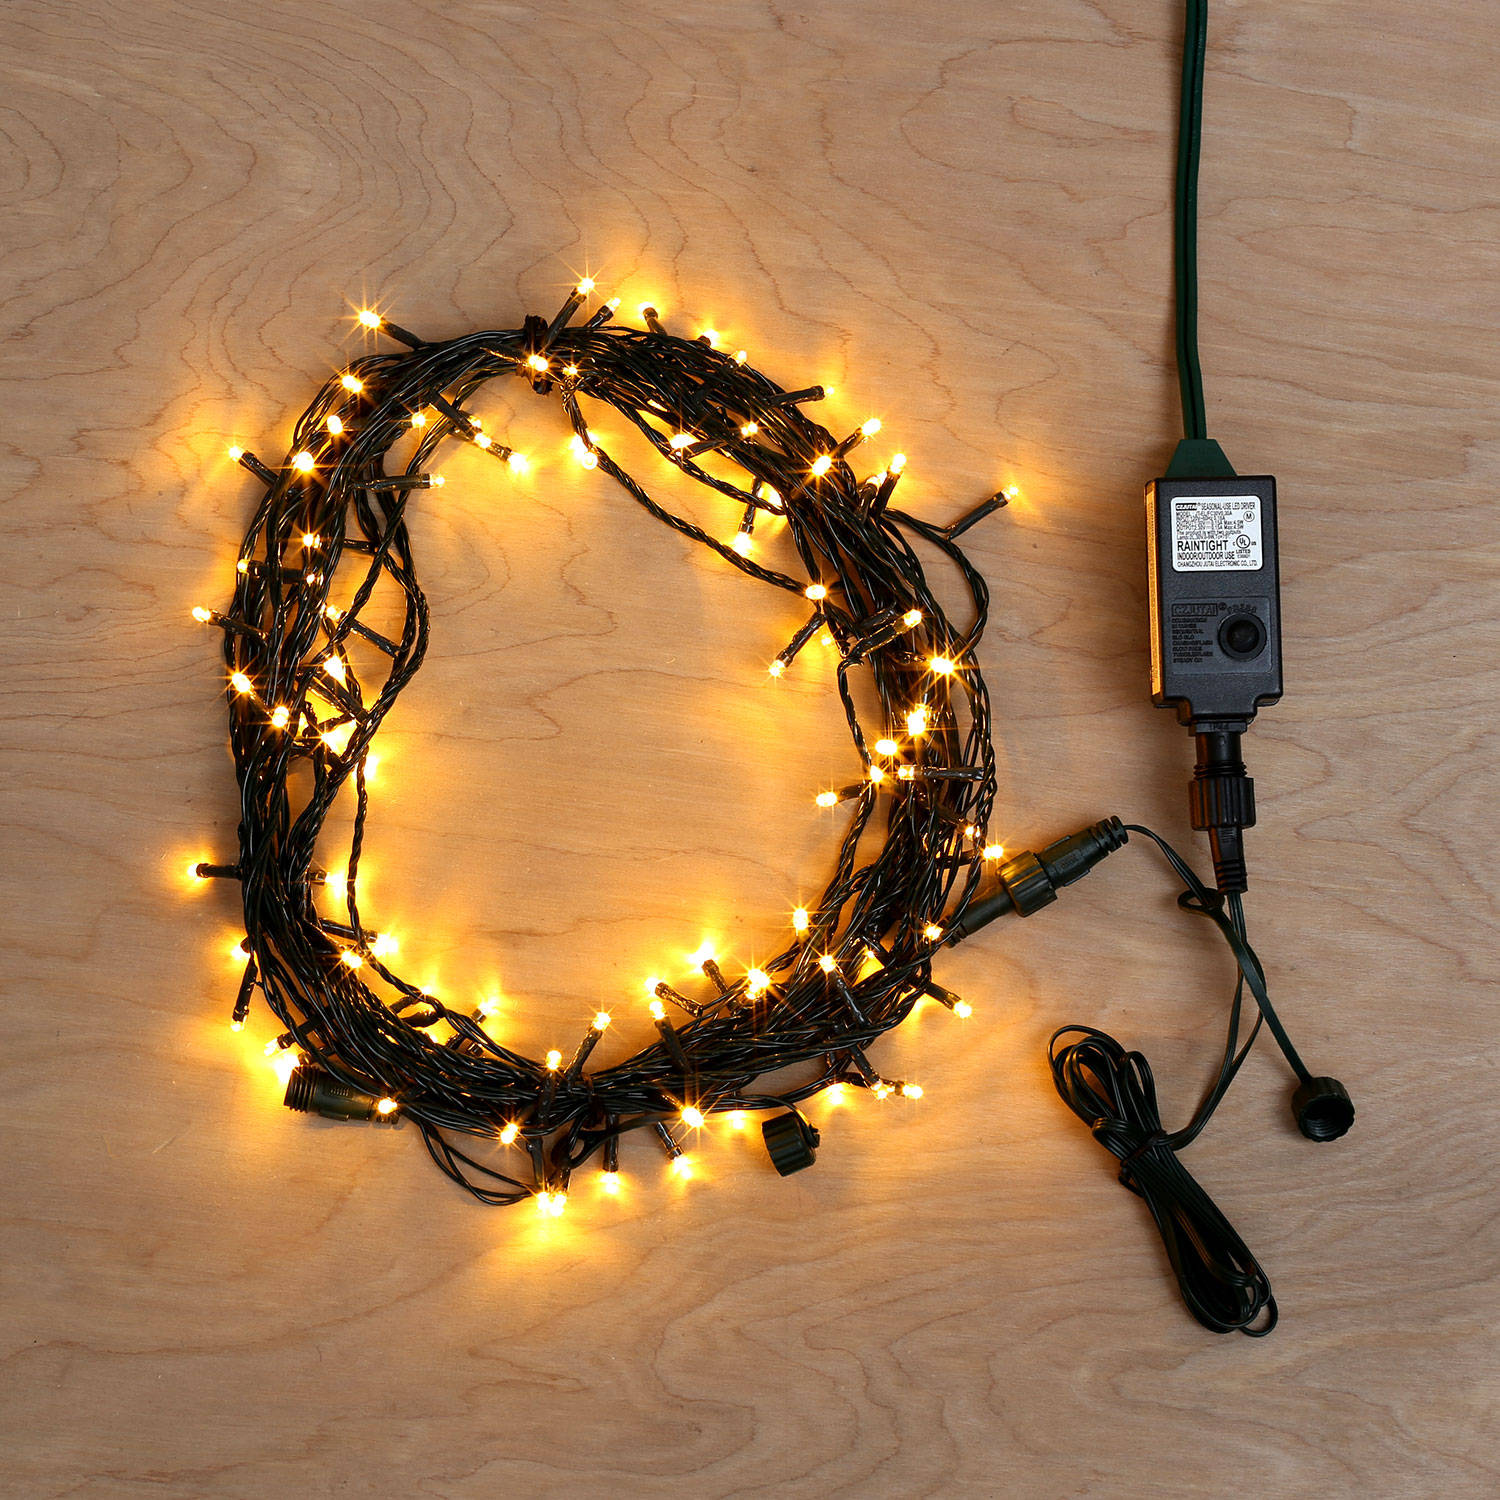 String Lights With No Plug : Events, Promotions and Inspirations from Lights.com